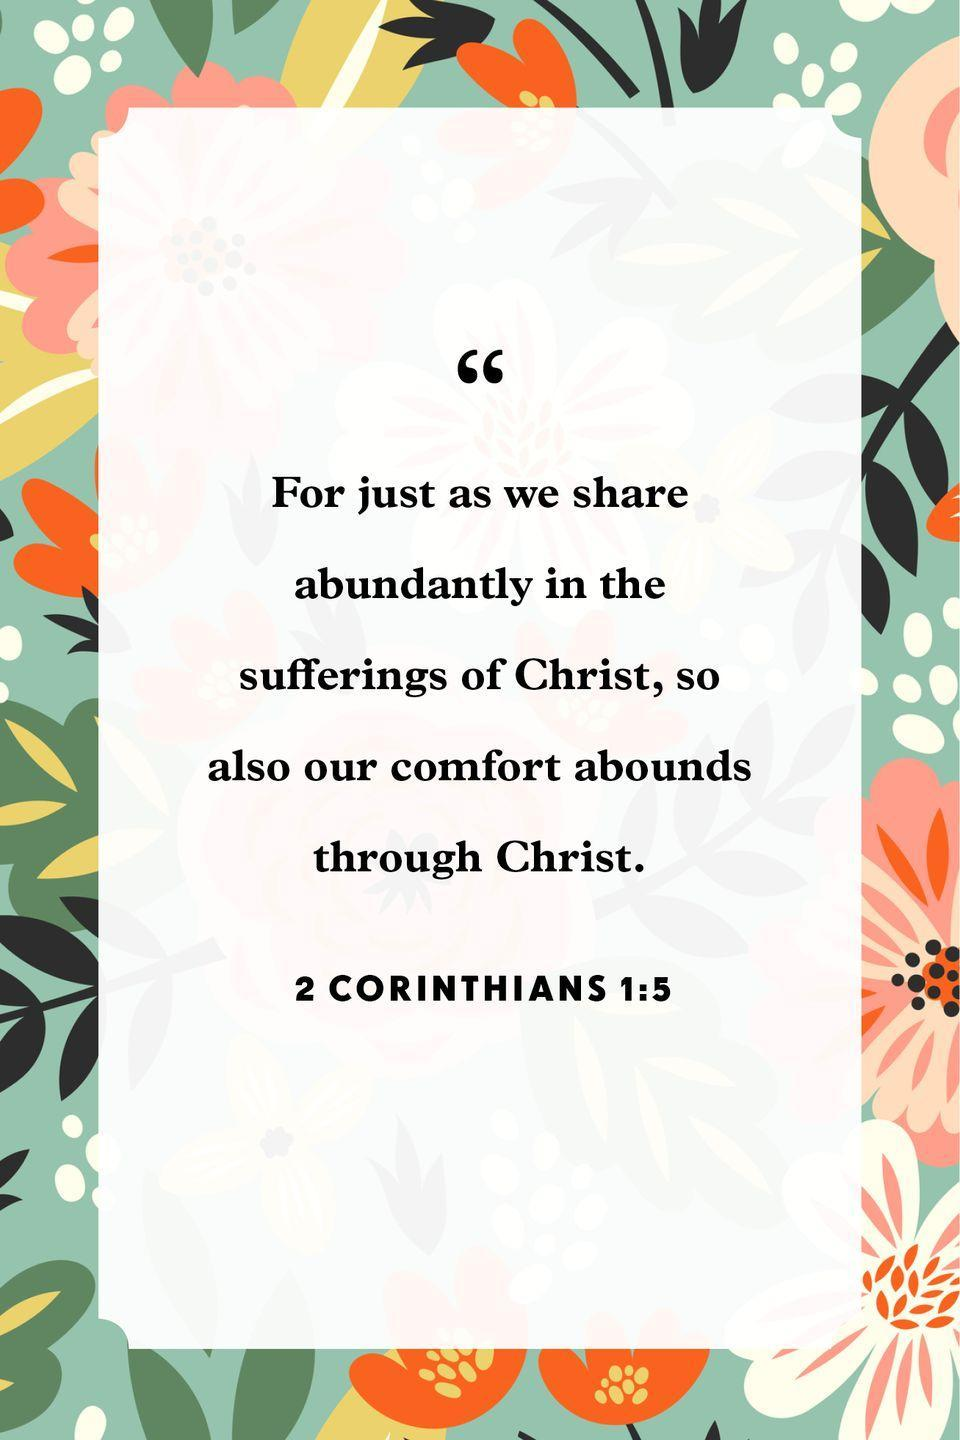 "<p>""For just as we share abundantly in the sufferings of Christ, so also our comfort abounds through Christ.""</p>"